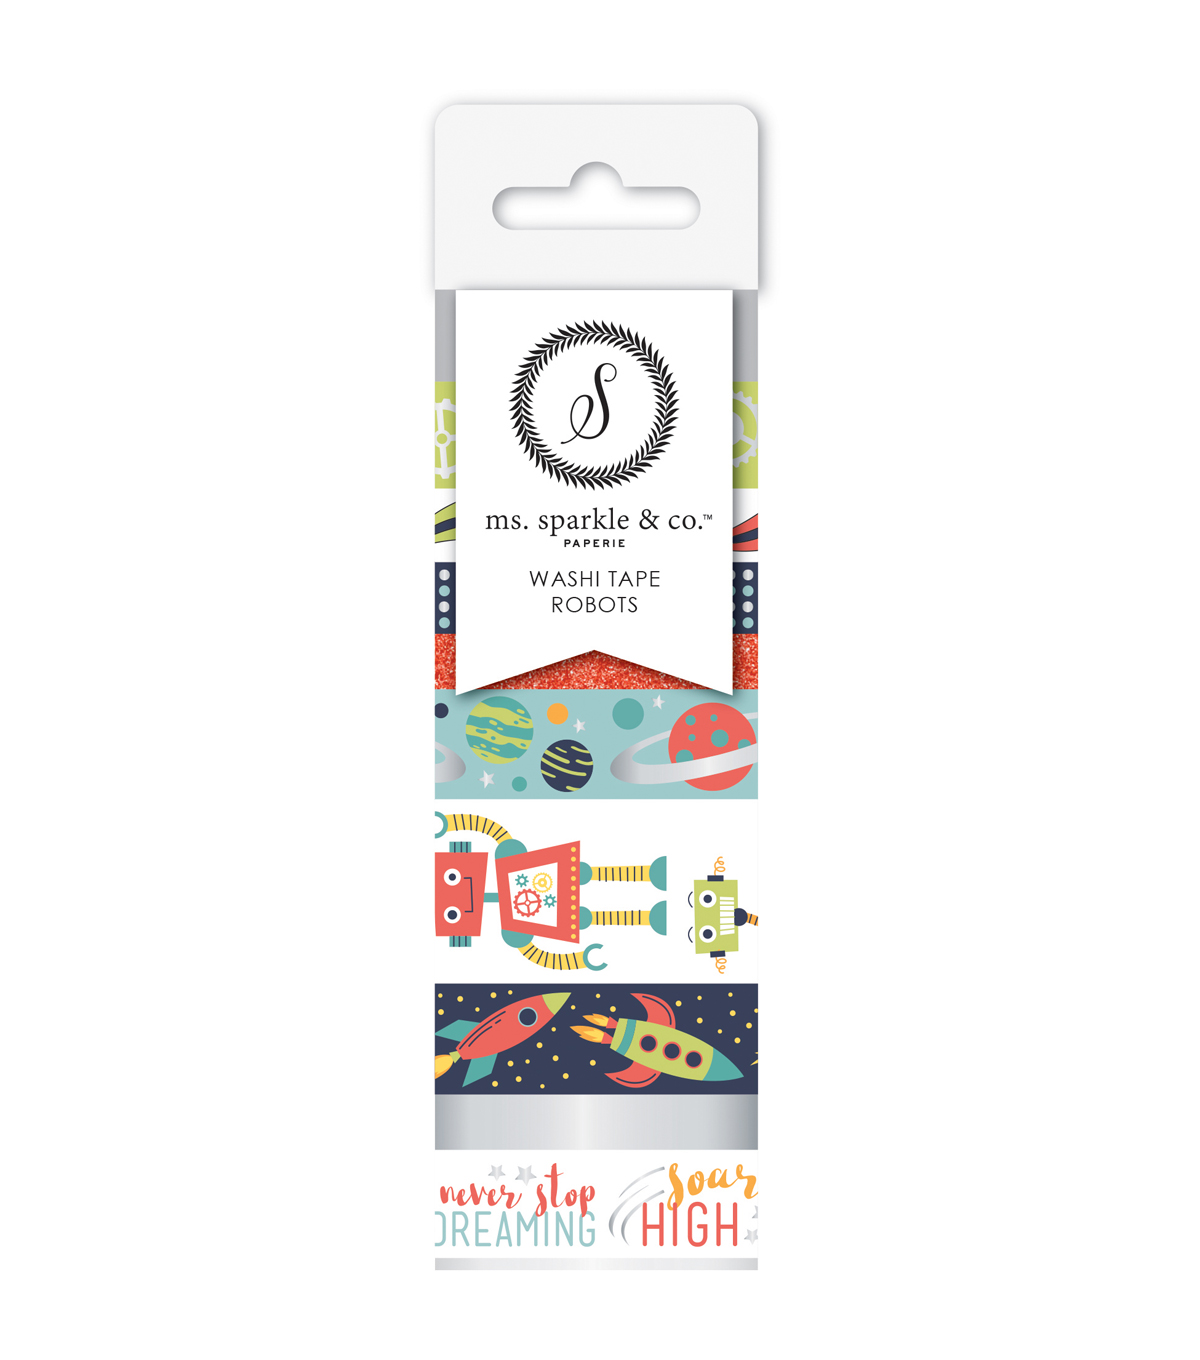 Ms. Sparkle & Co. 9 pk Washi Tapes-Robots